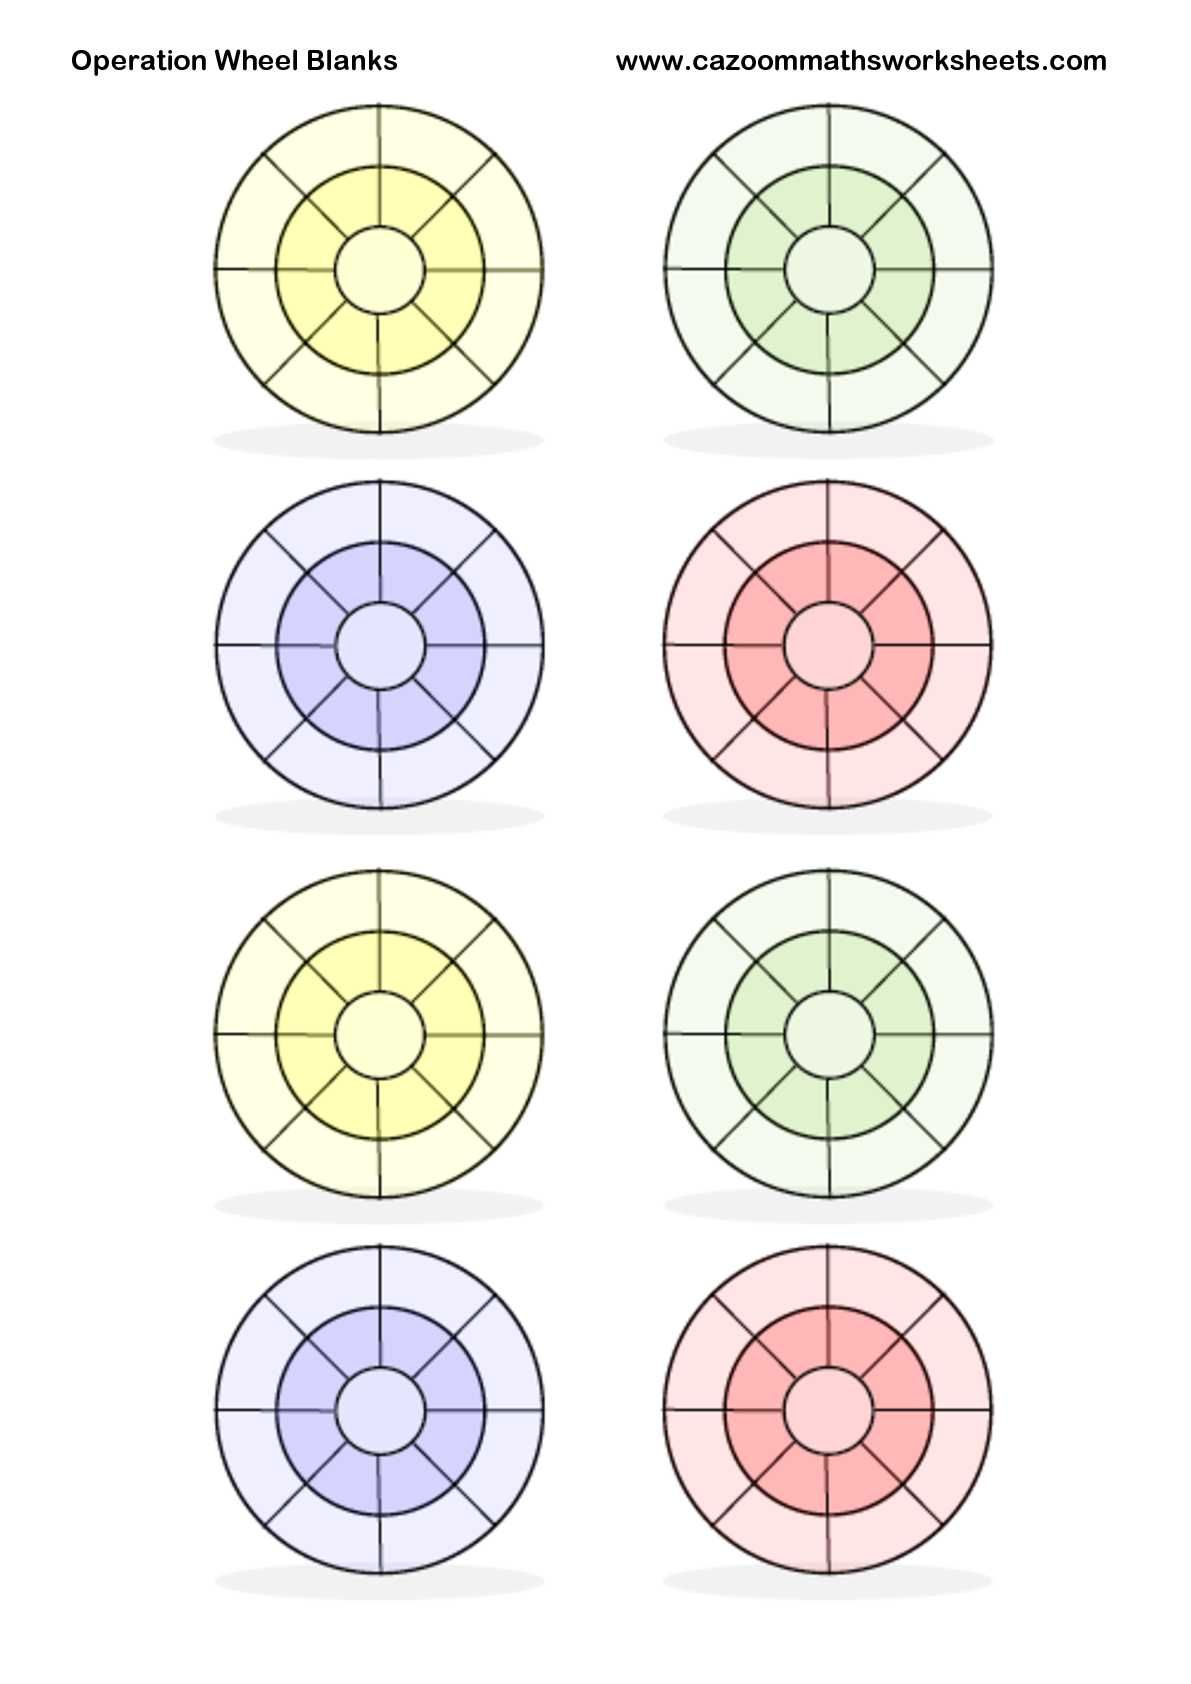 Operation Wheel Blanks For Addition Subtraction Or